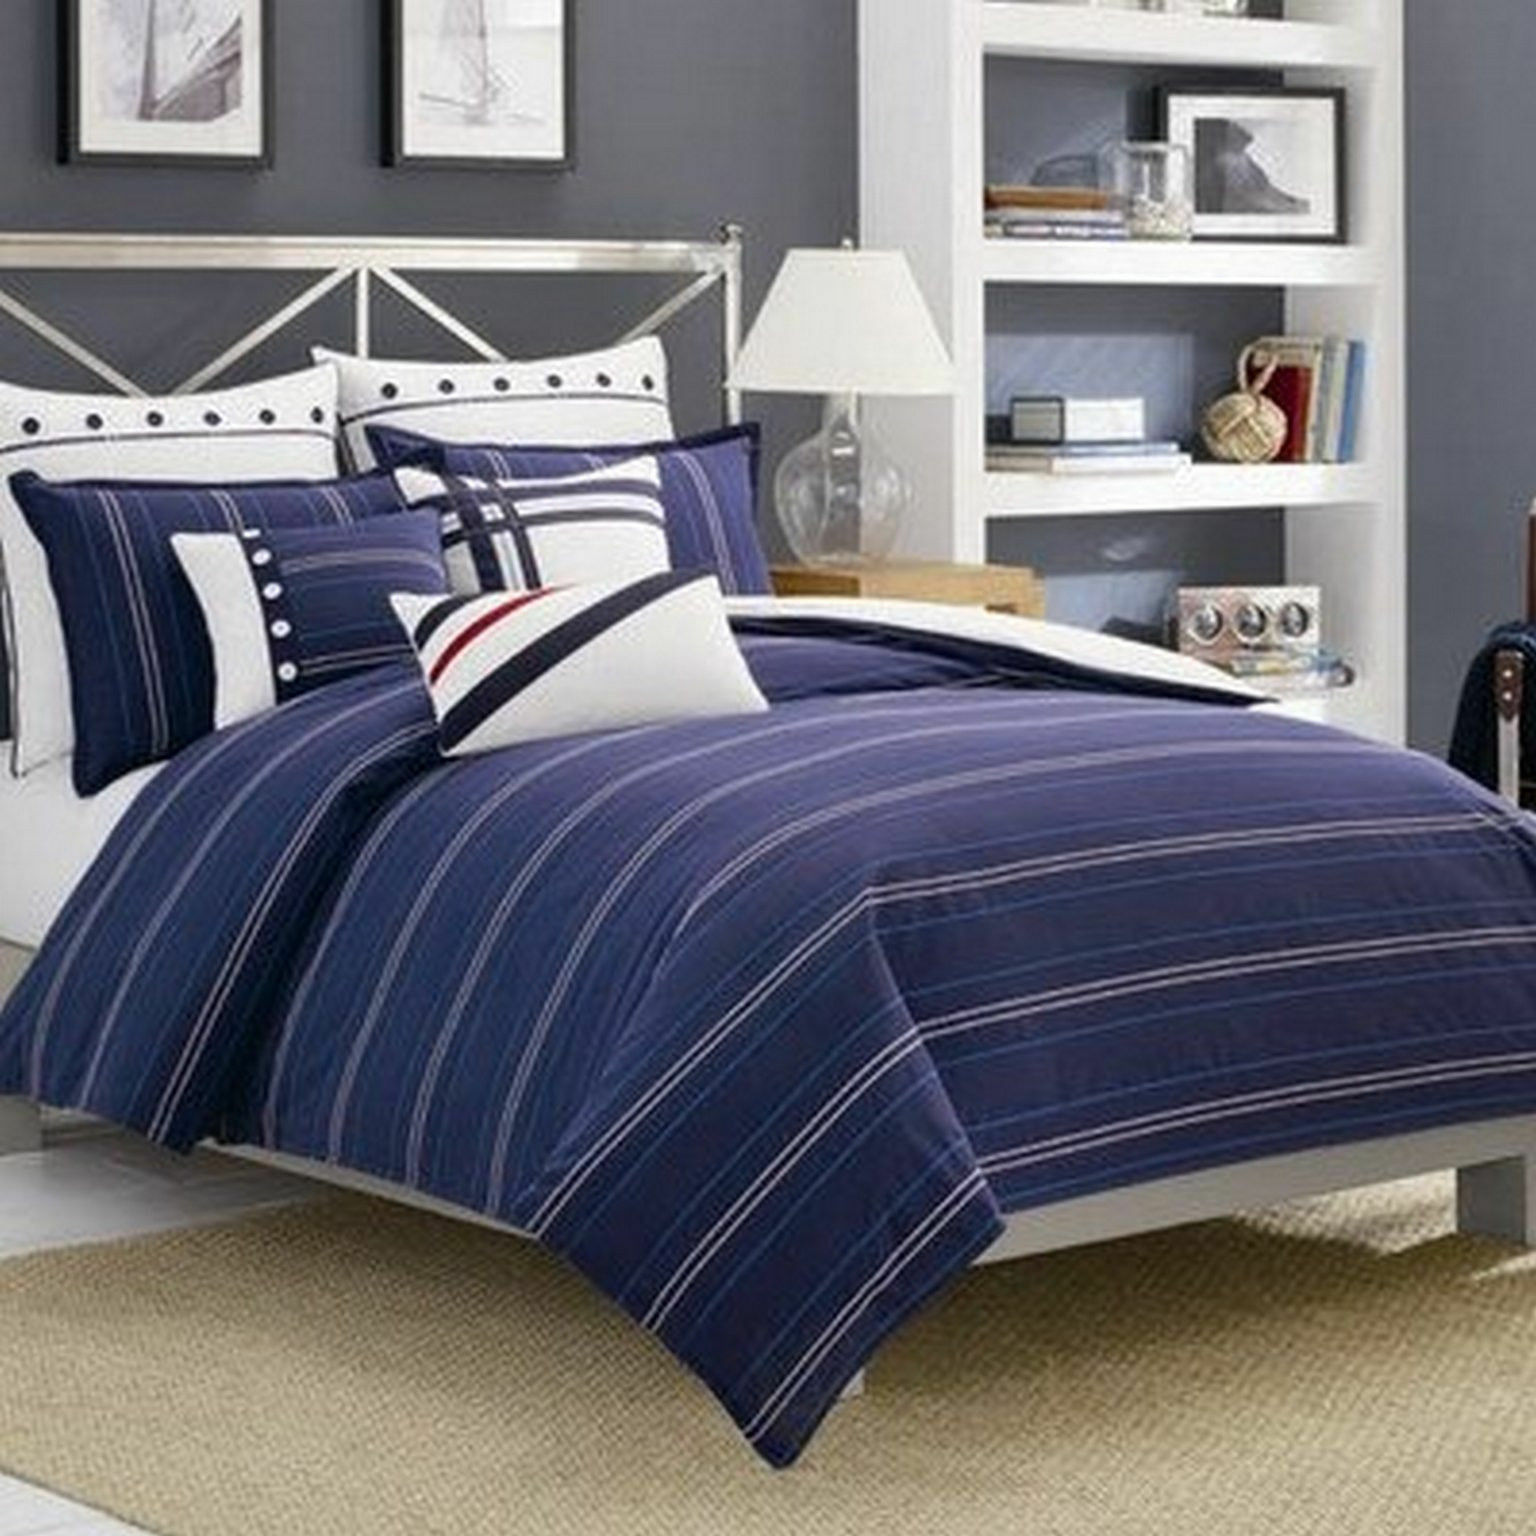 Nautica Winston Navy Blau Duvet Cover, King sailing boat nautical Bedroom Cotton